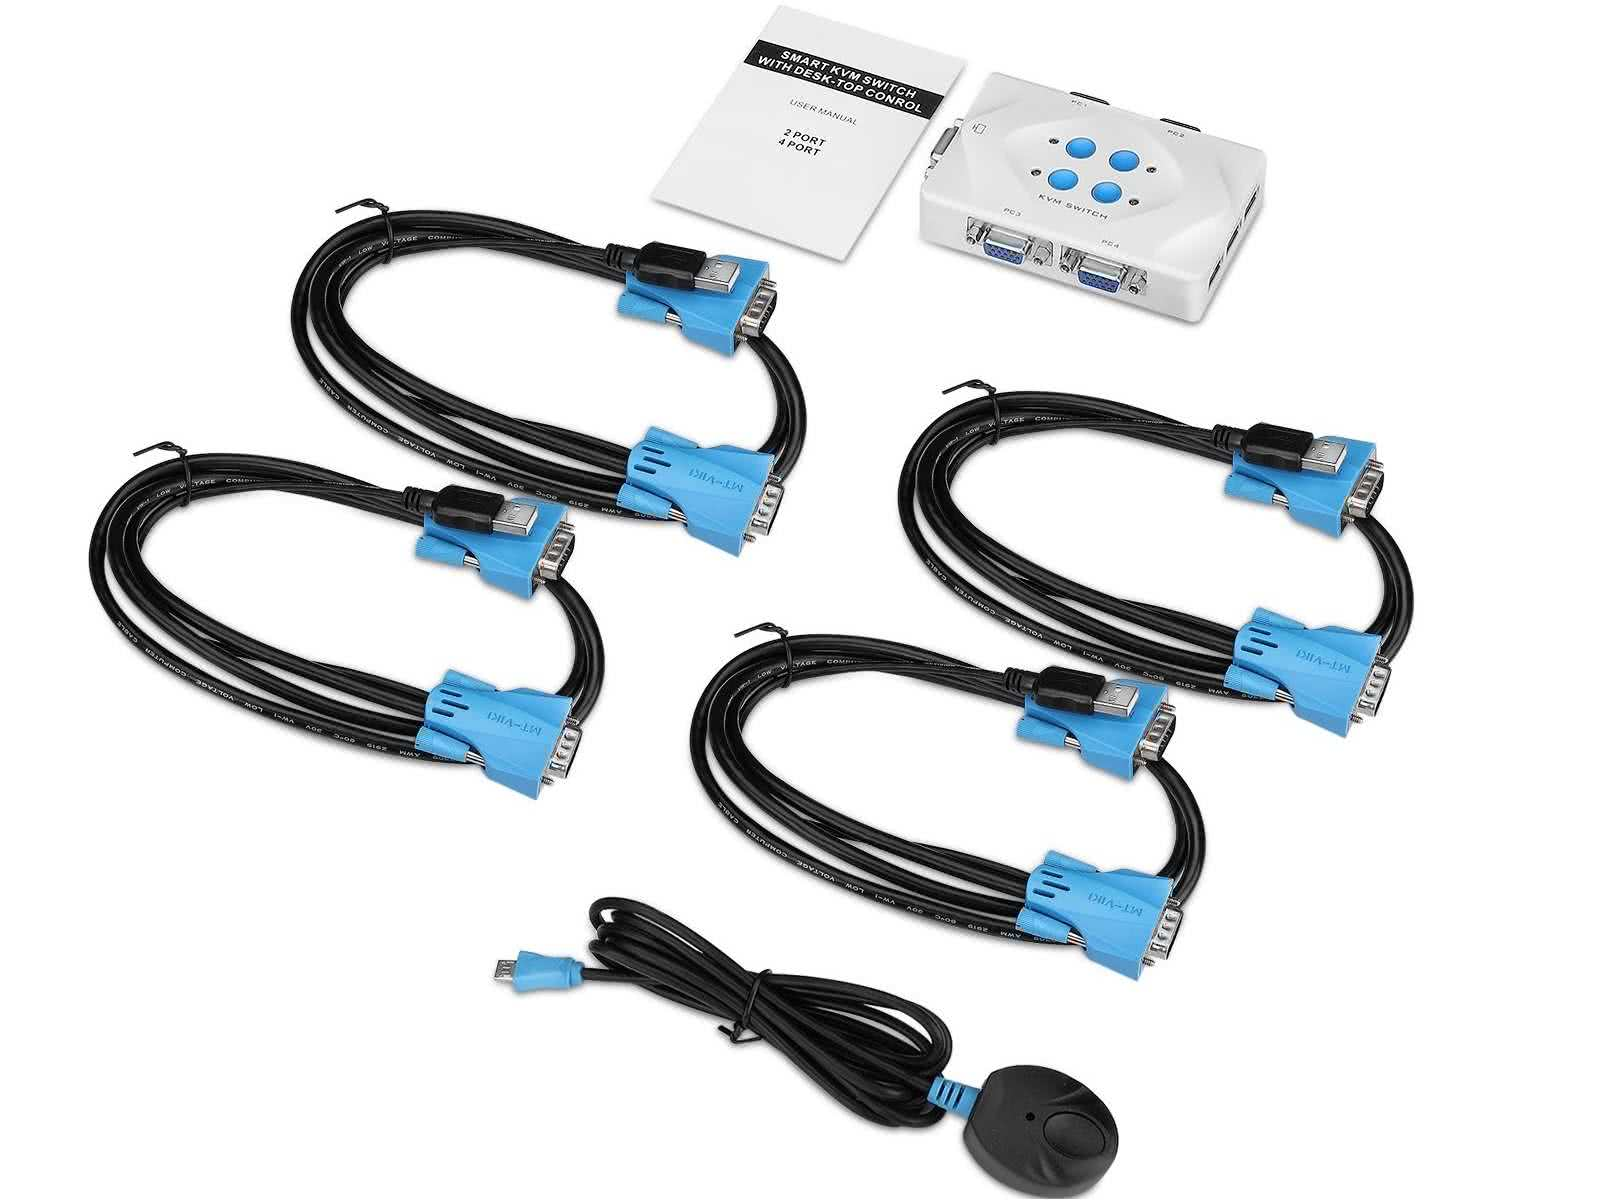 4-Port USB VGA KVM Switch INCLUDING 4 x USB / VGA KVM Cables (Switch 1 PC/Laptop Screen/Keyboard/Mouse between 4 Displays)